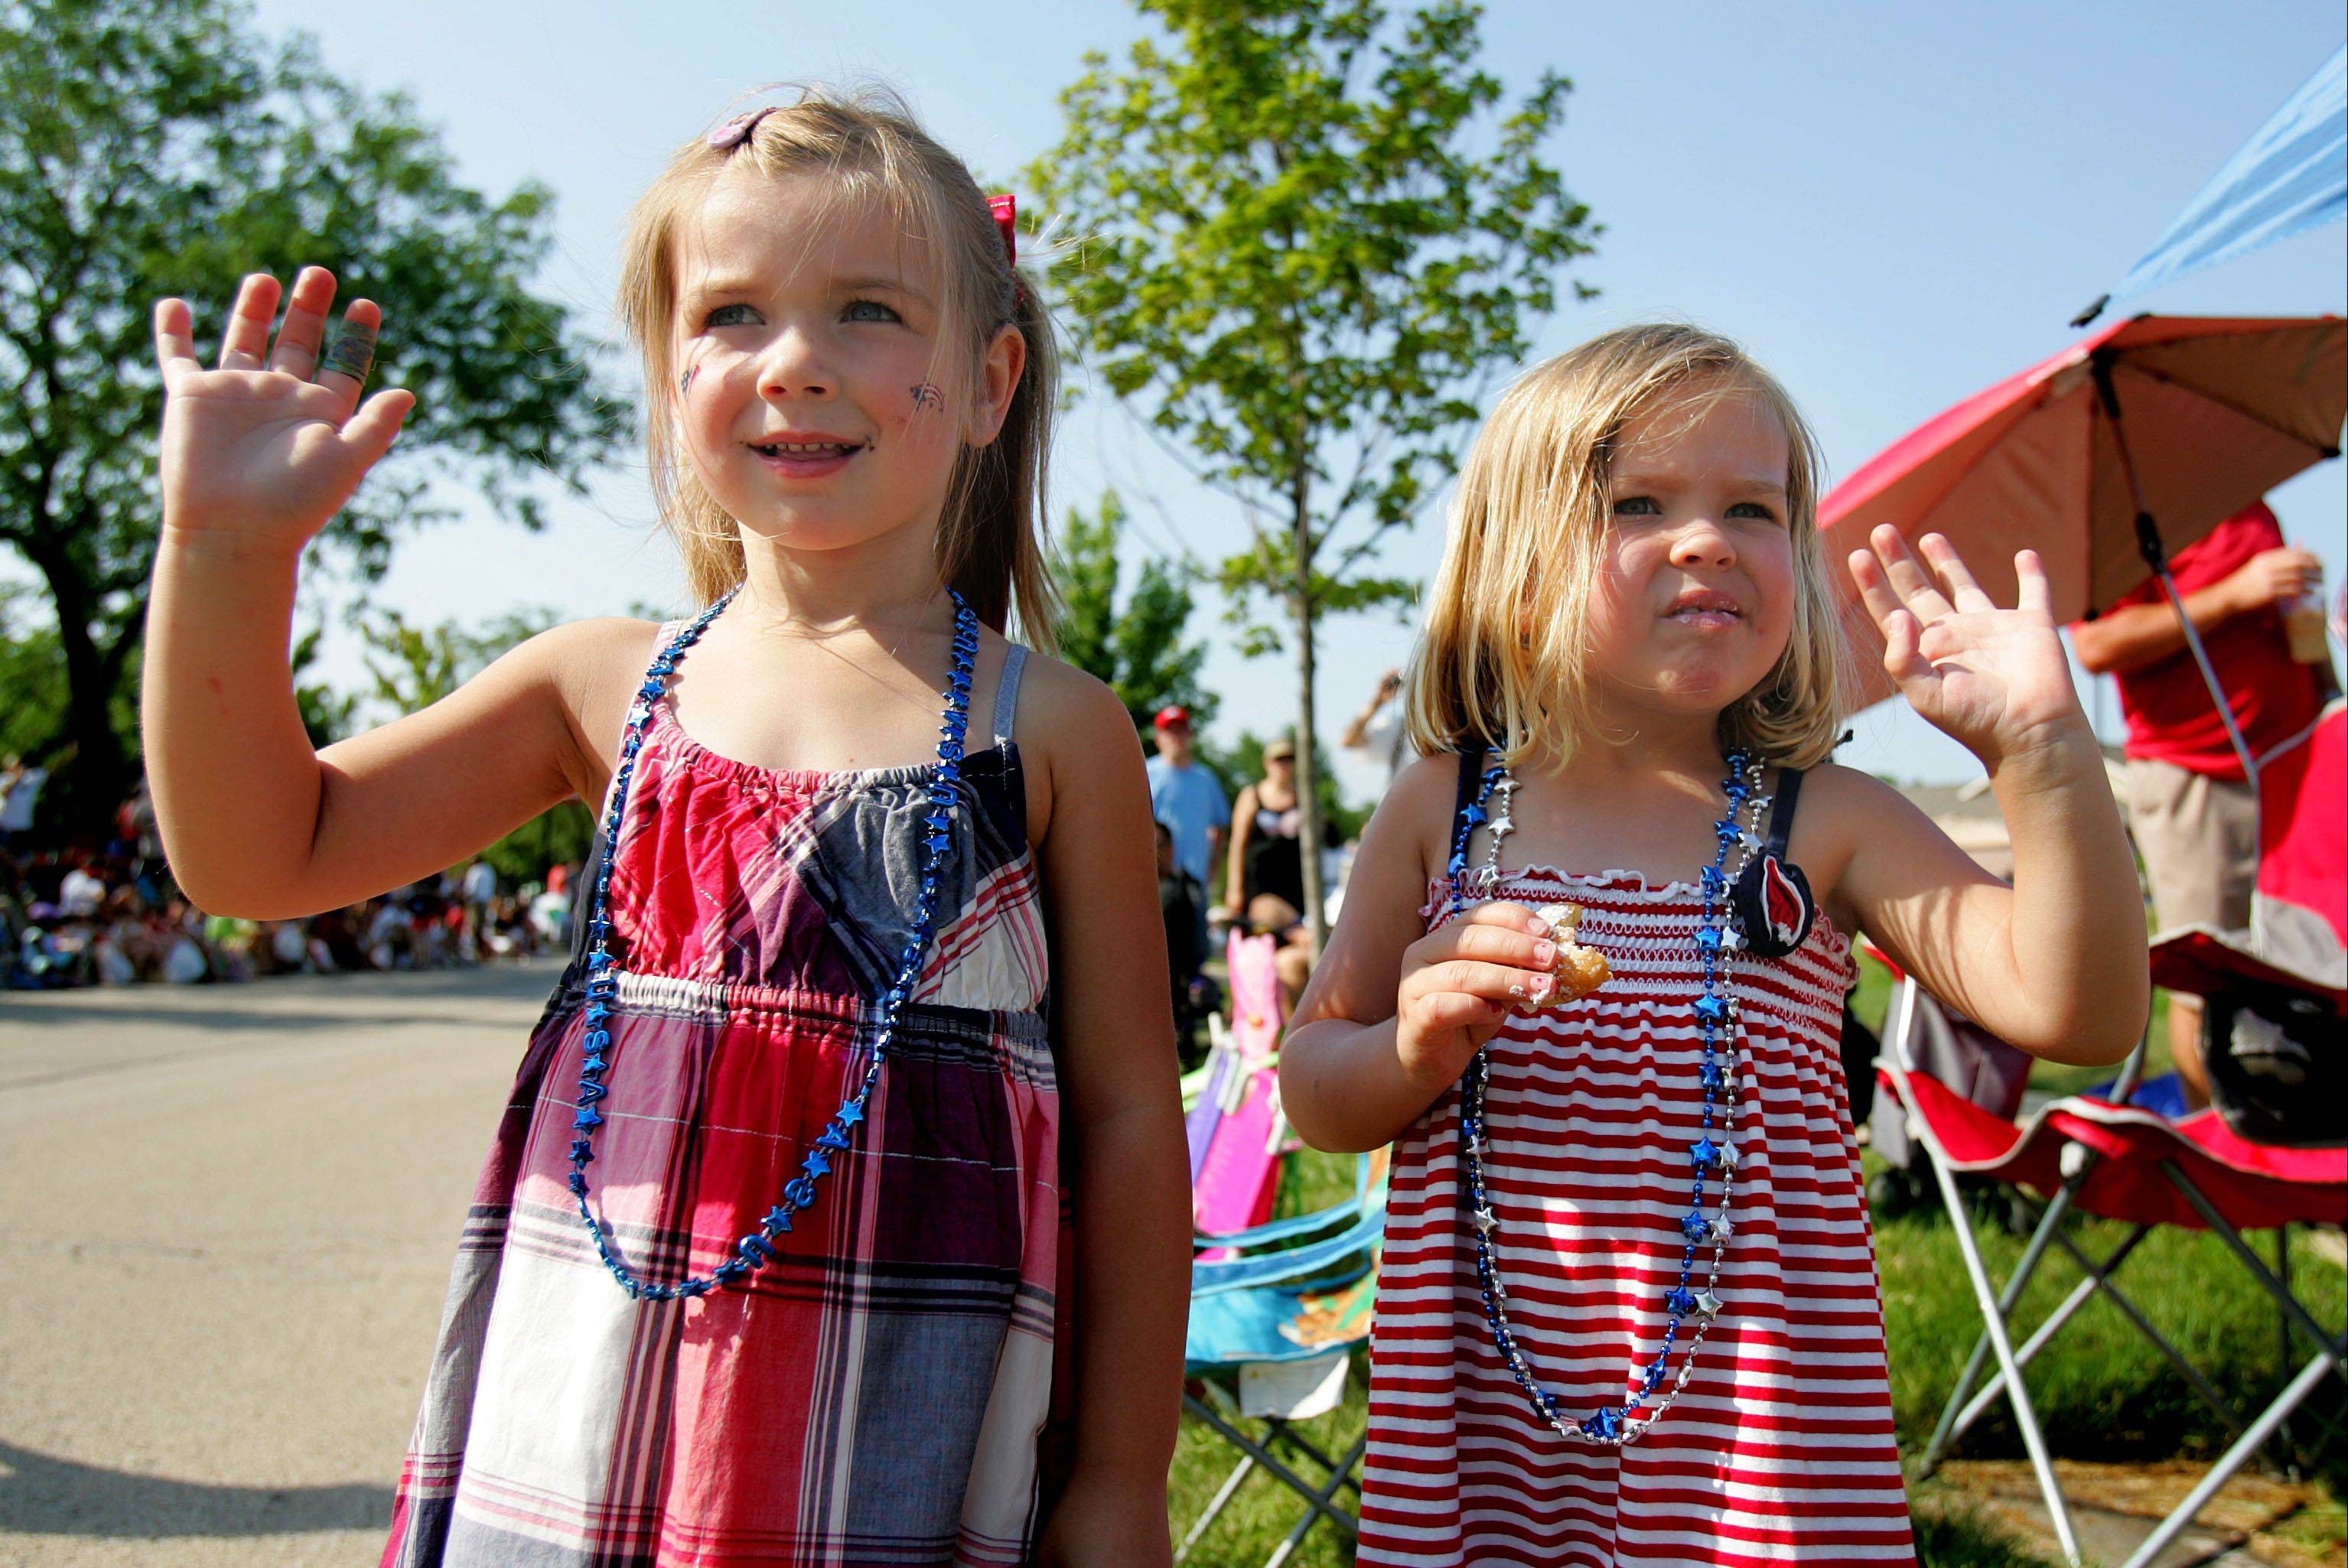 Four-year-old Maddy Gardner, left, and 3-year-old Olivia Altergott, both of Wauconda, wave as the Vernon Hills Fourth of July Parade begins Wednesday morning.